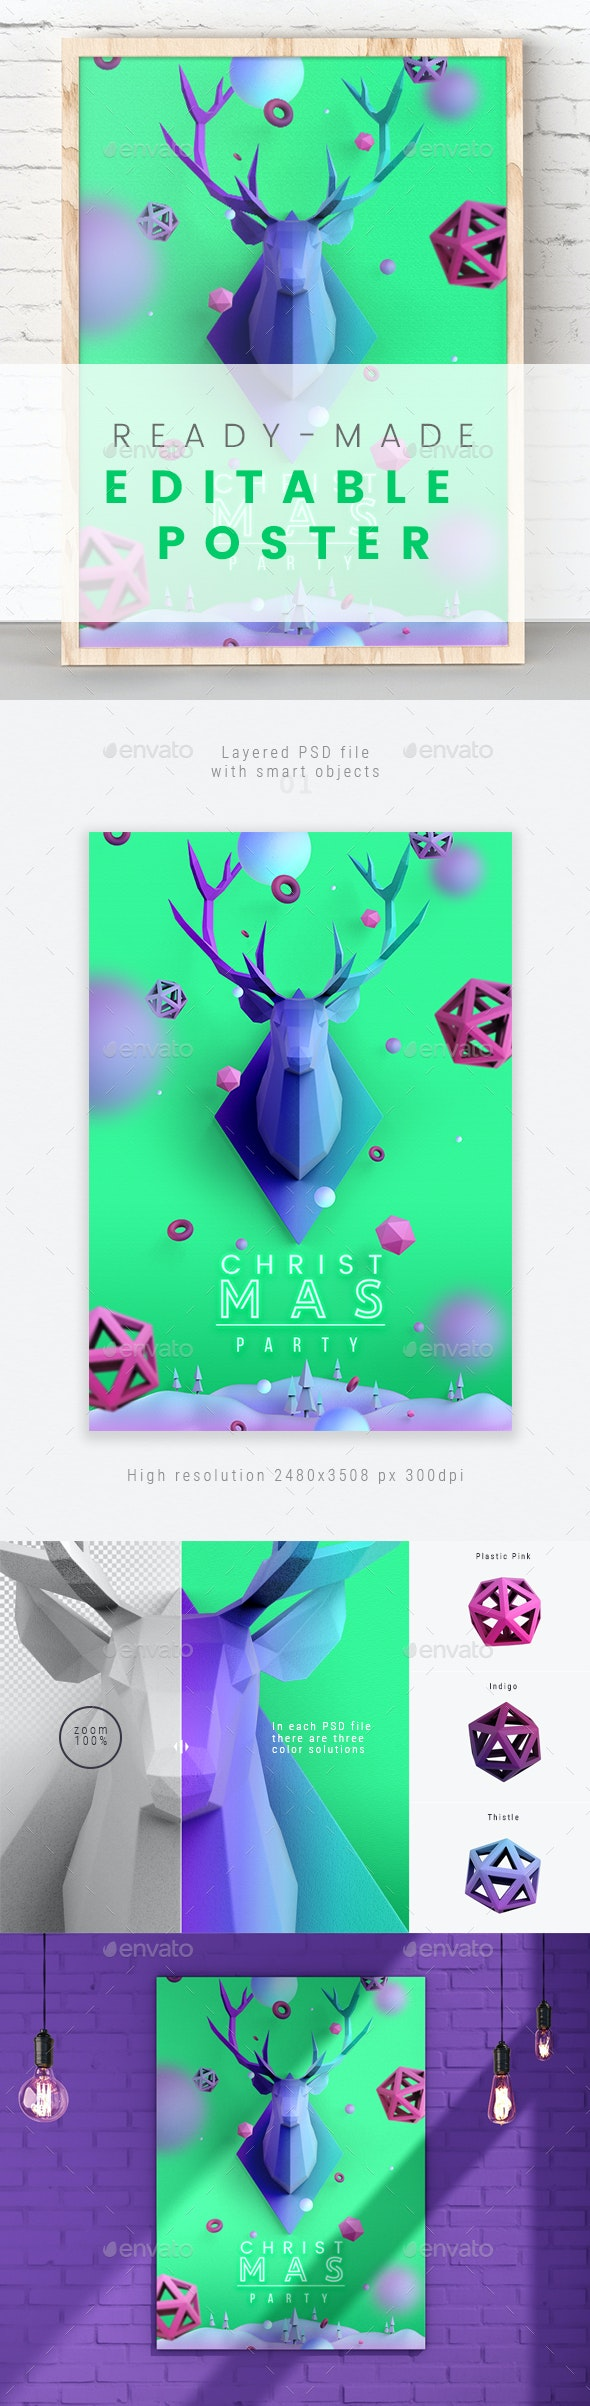 Christmas Poster in Aquamarine Color - Posters Print